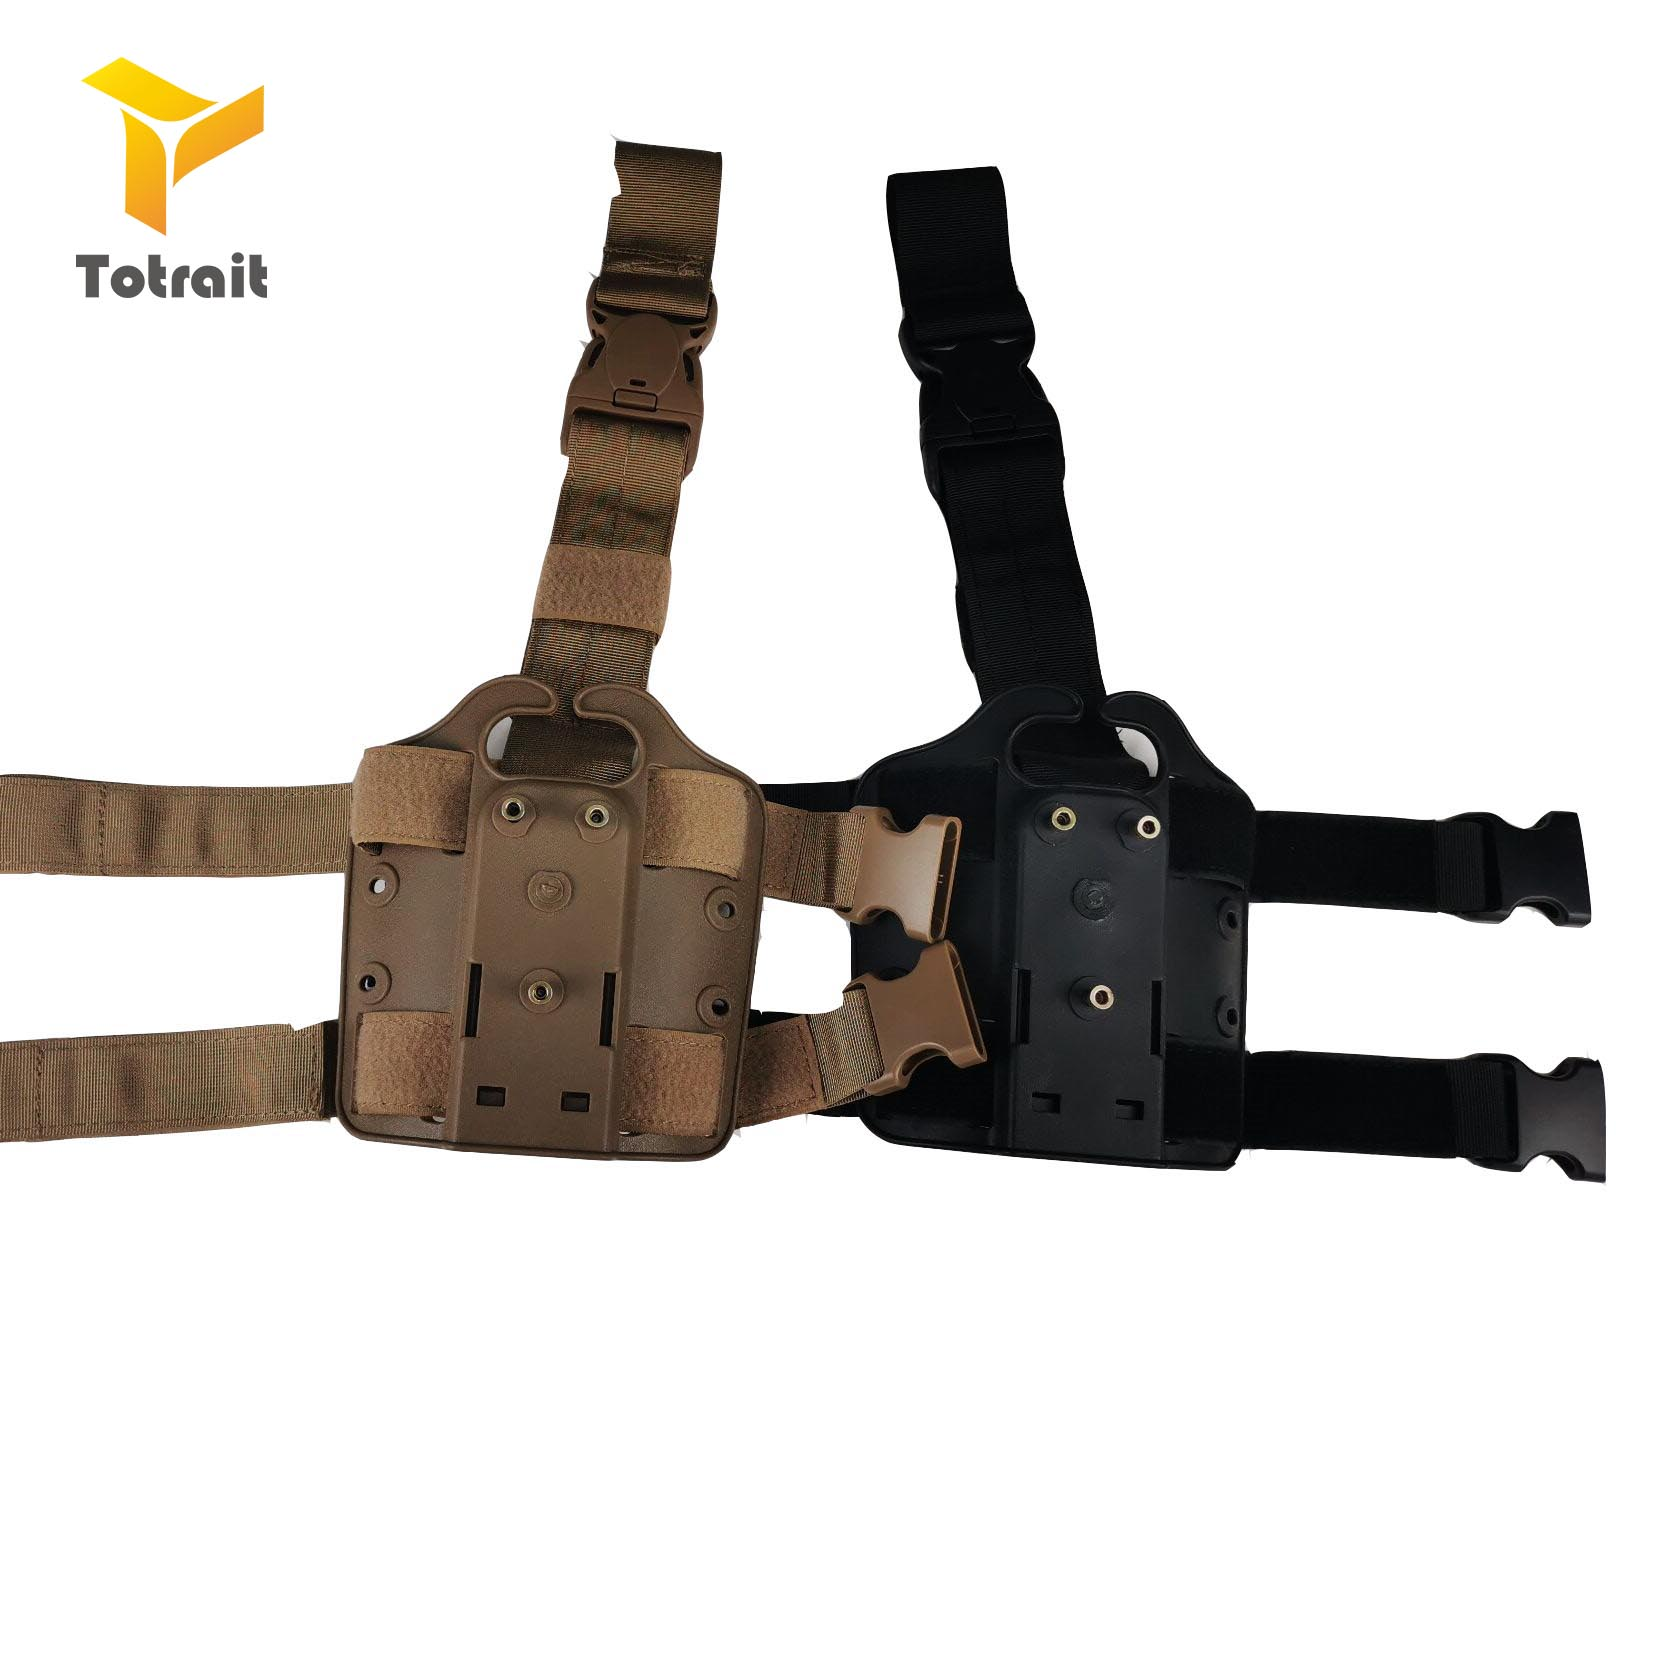 Leg Holster Platform Tactical Hunting Gear Leg Thigh Drop Leg Holster Paddle Adapter Platform GL19 92 HK USP 1911 Sig P226